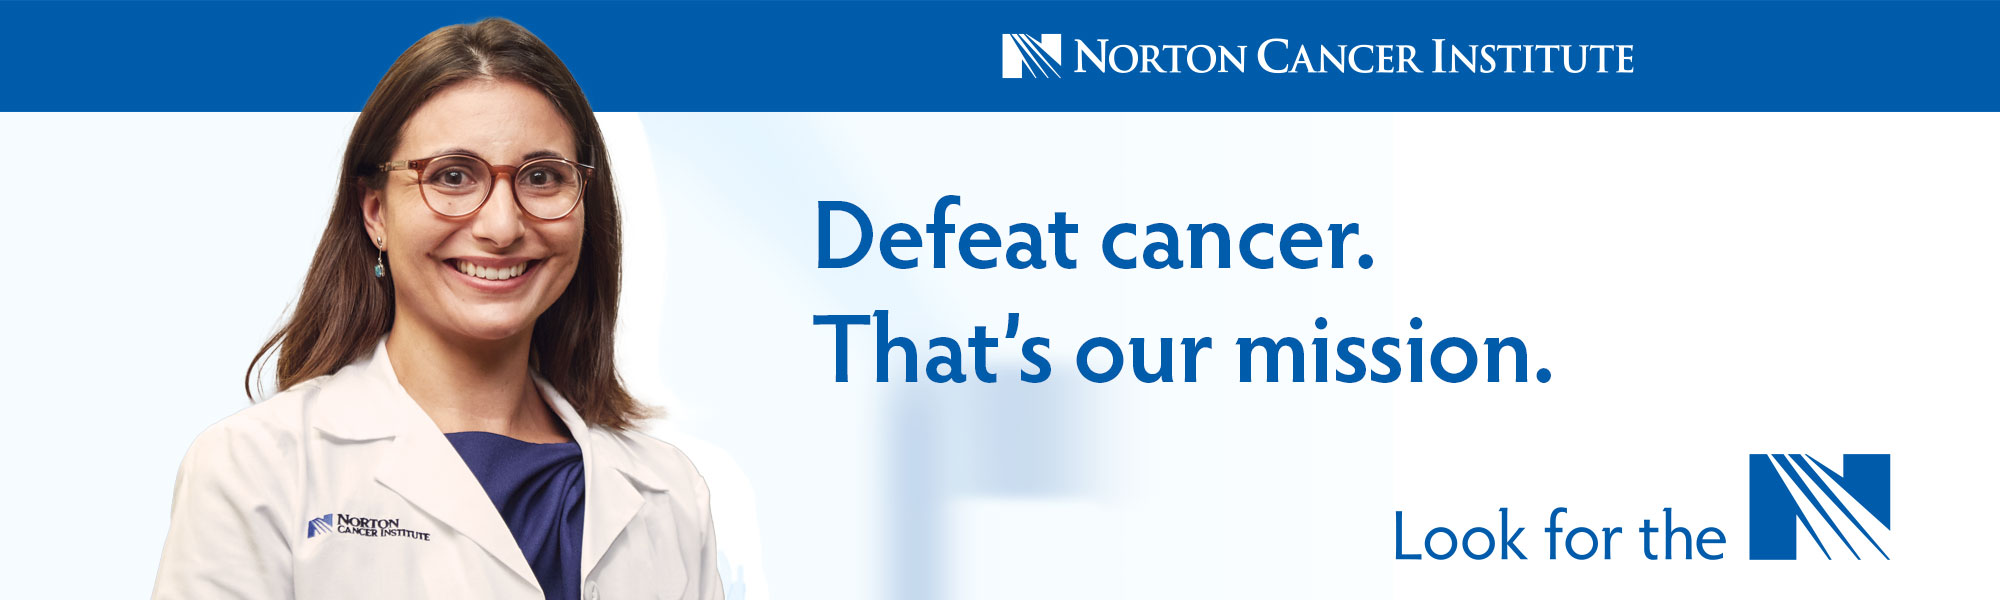 Defeat Cancer. That's our mission.